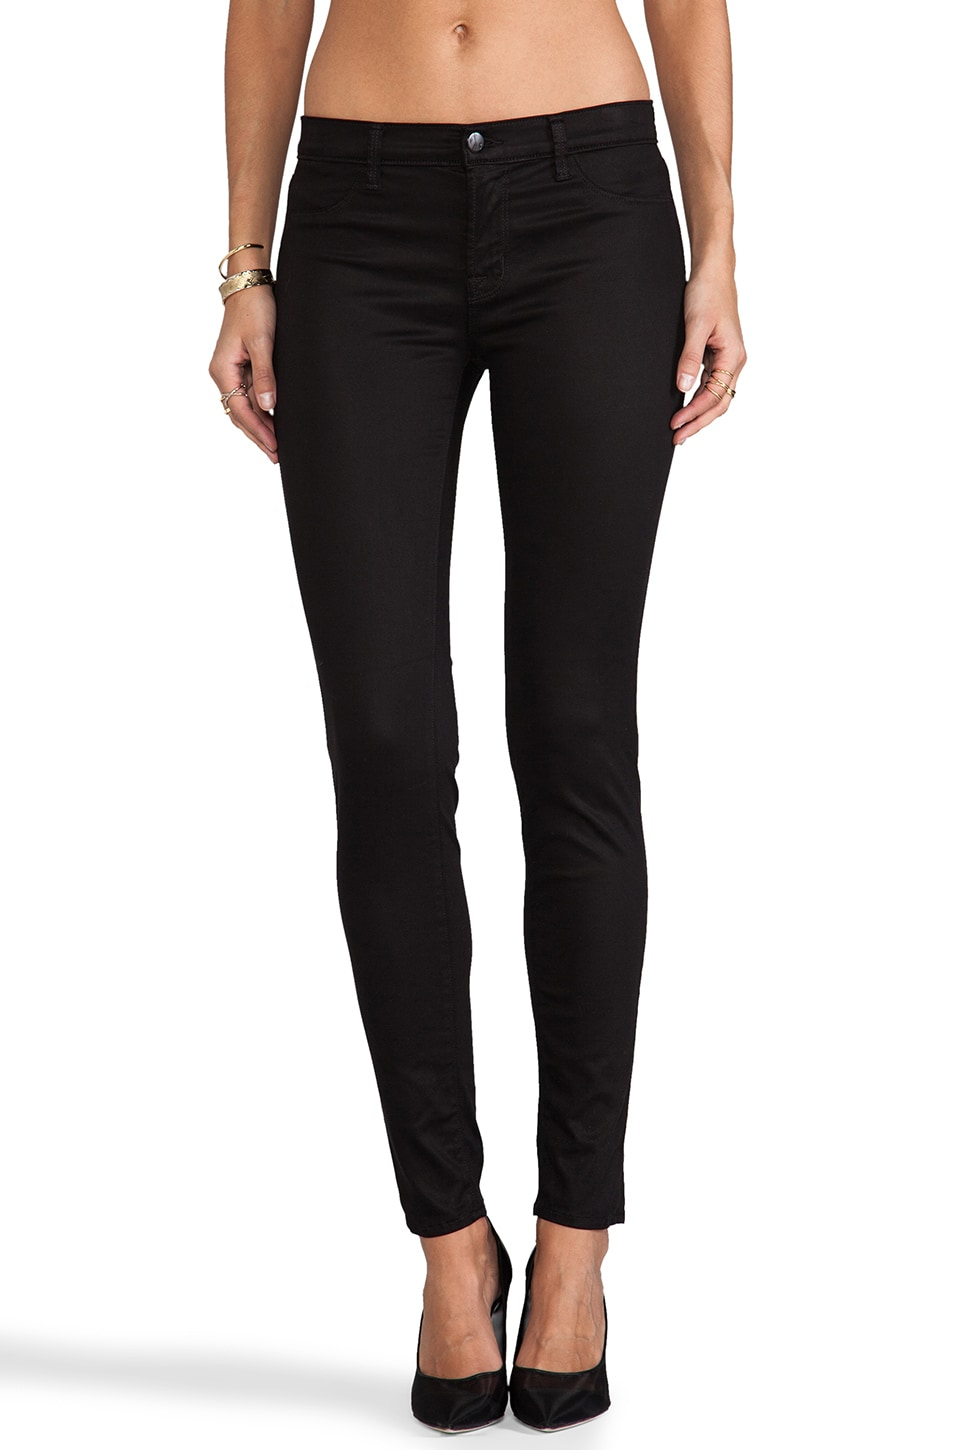 J Brand High Shine Sateen Midrise Skinny in Black